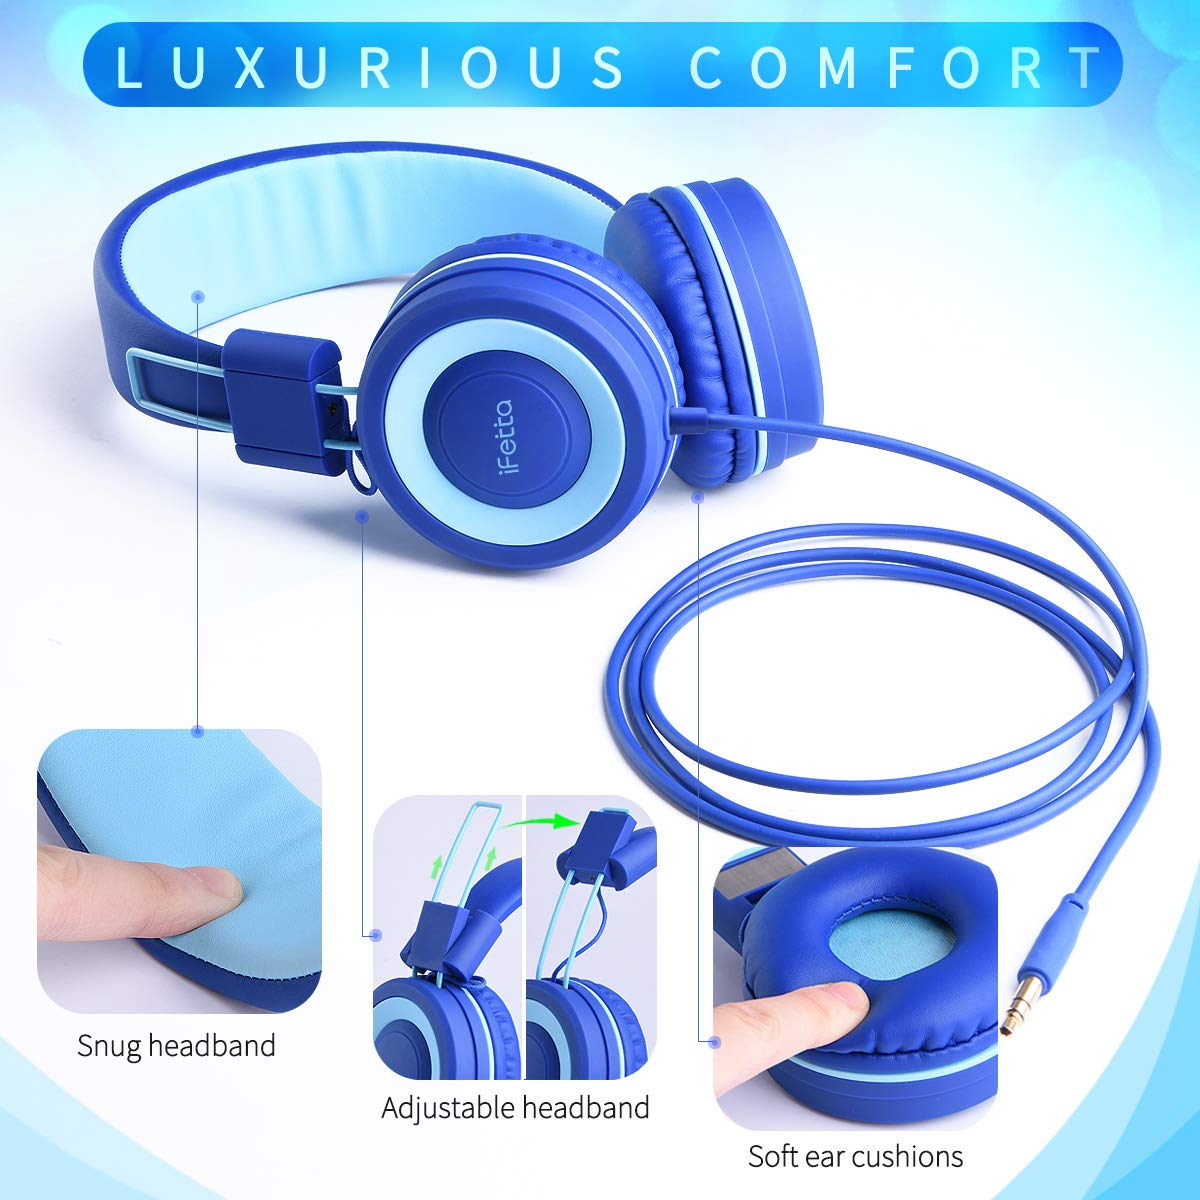 Ifecco Kids Headphones, Wired On Ear Headphones Foldable Adjustable Over Ear Headsets 3.5mmm Aux Jack Children's Headphones for School Home and Travel, Blue